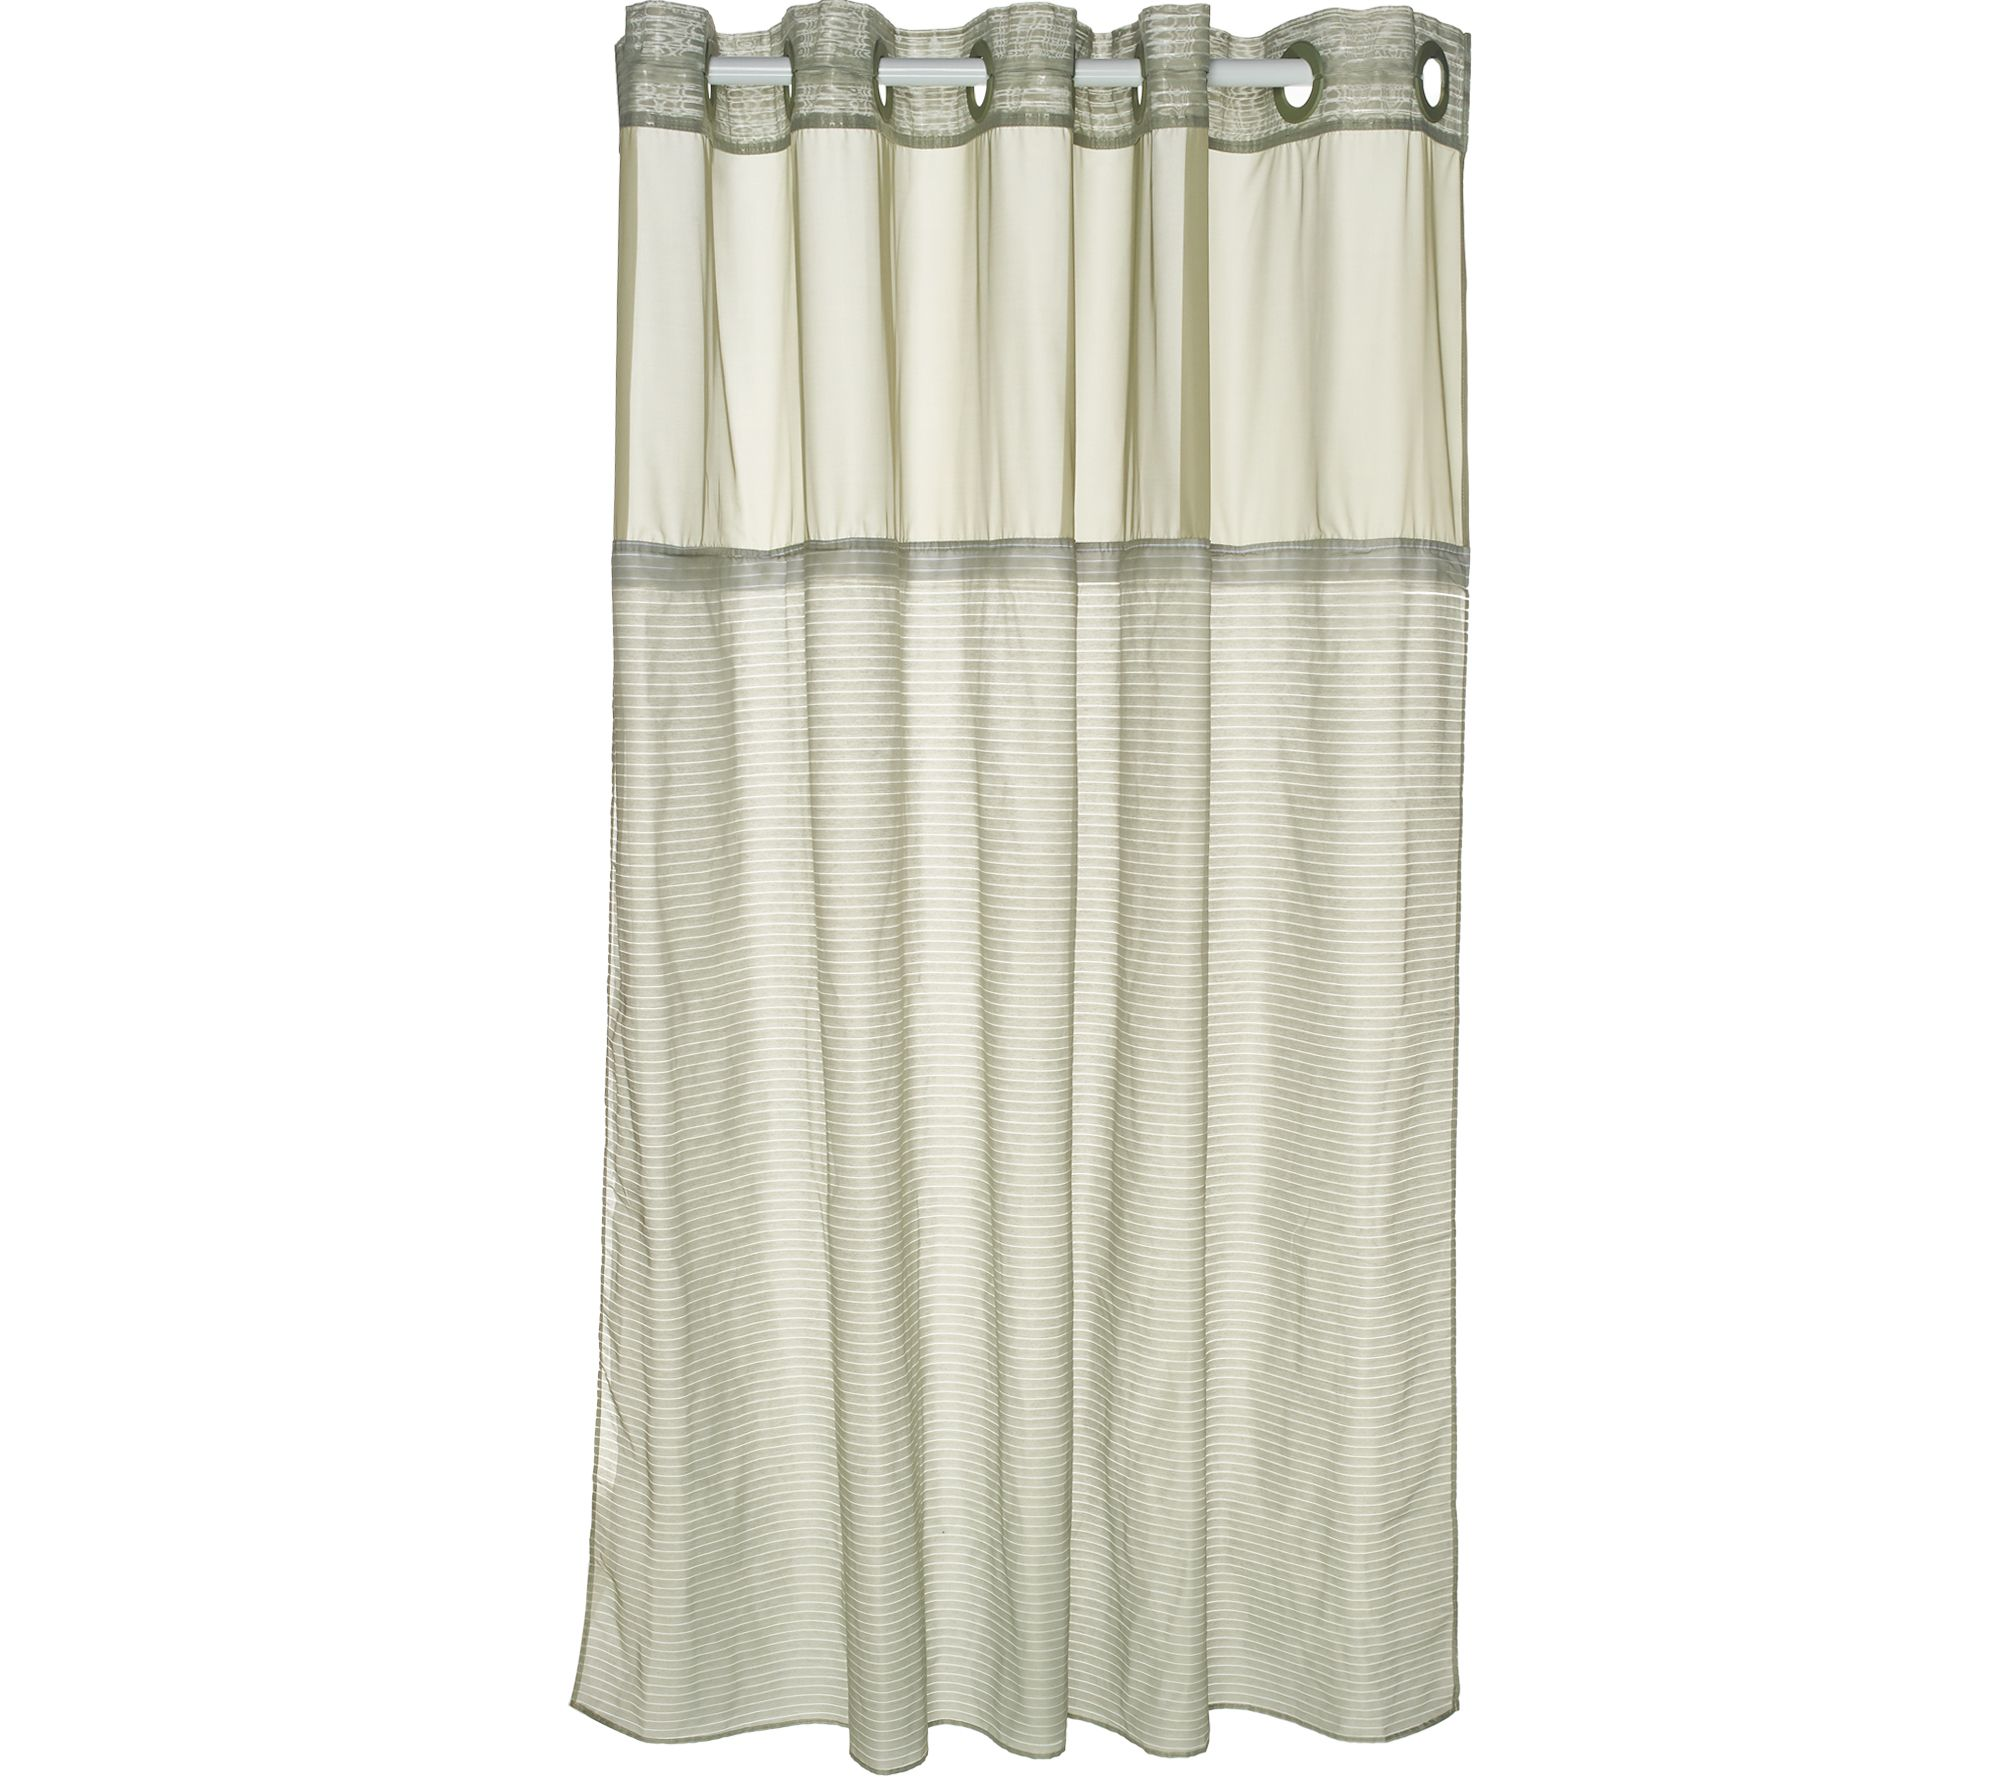 U shaped shower curtain rail b and q - Hookless Luxe Stripe 3 In 1 Shower Curtain H213482